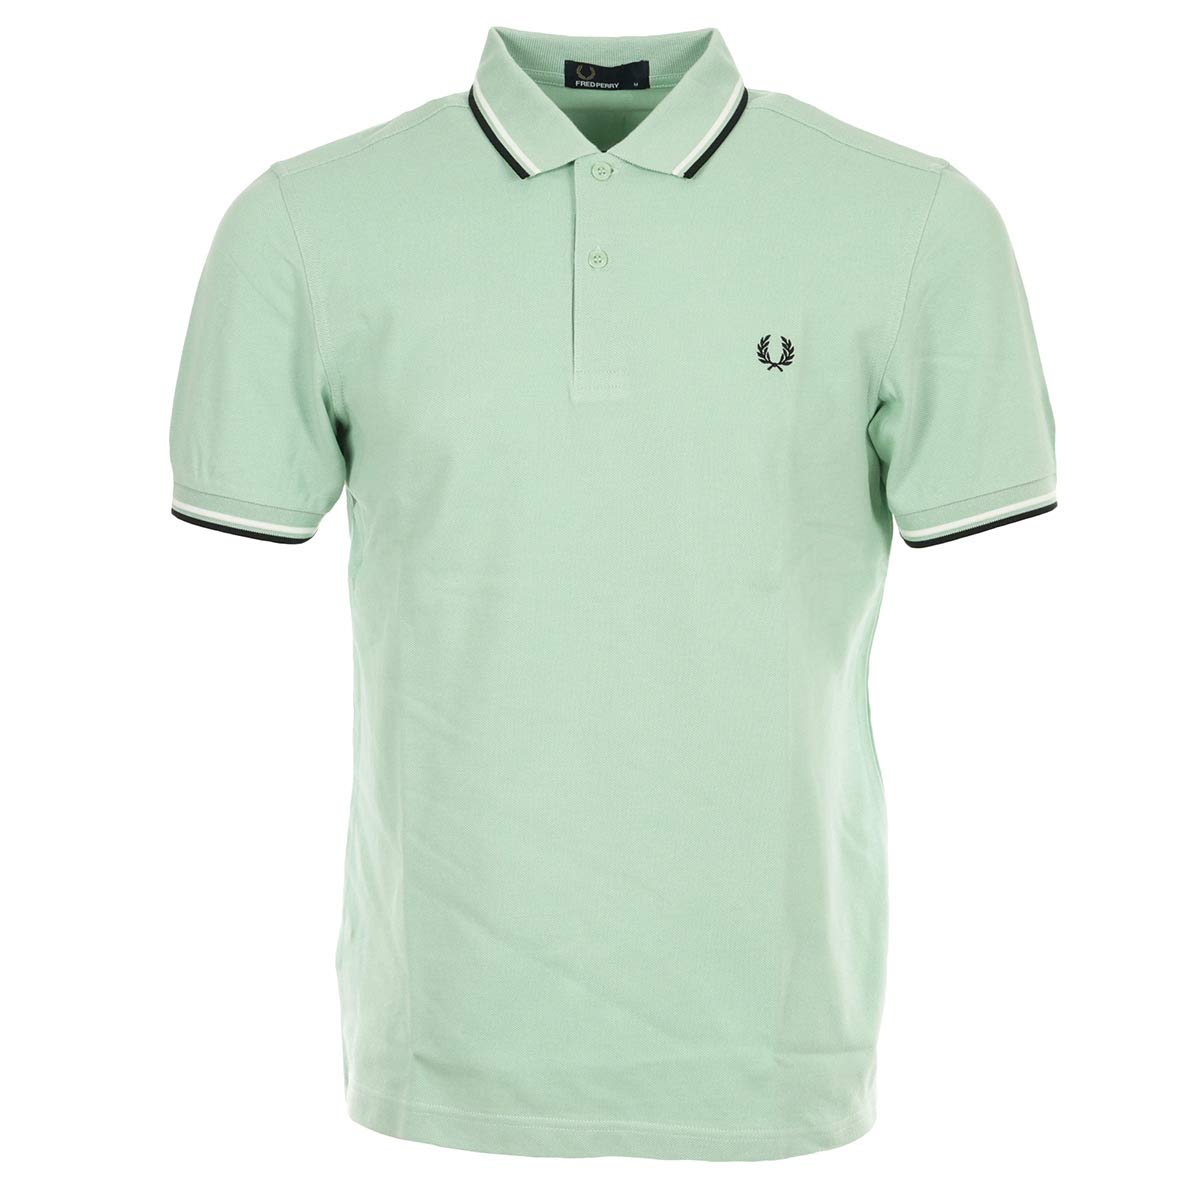 Fred Perry Hombres Polo Doble con Punta m3600 H40 Verde Claro L ...